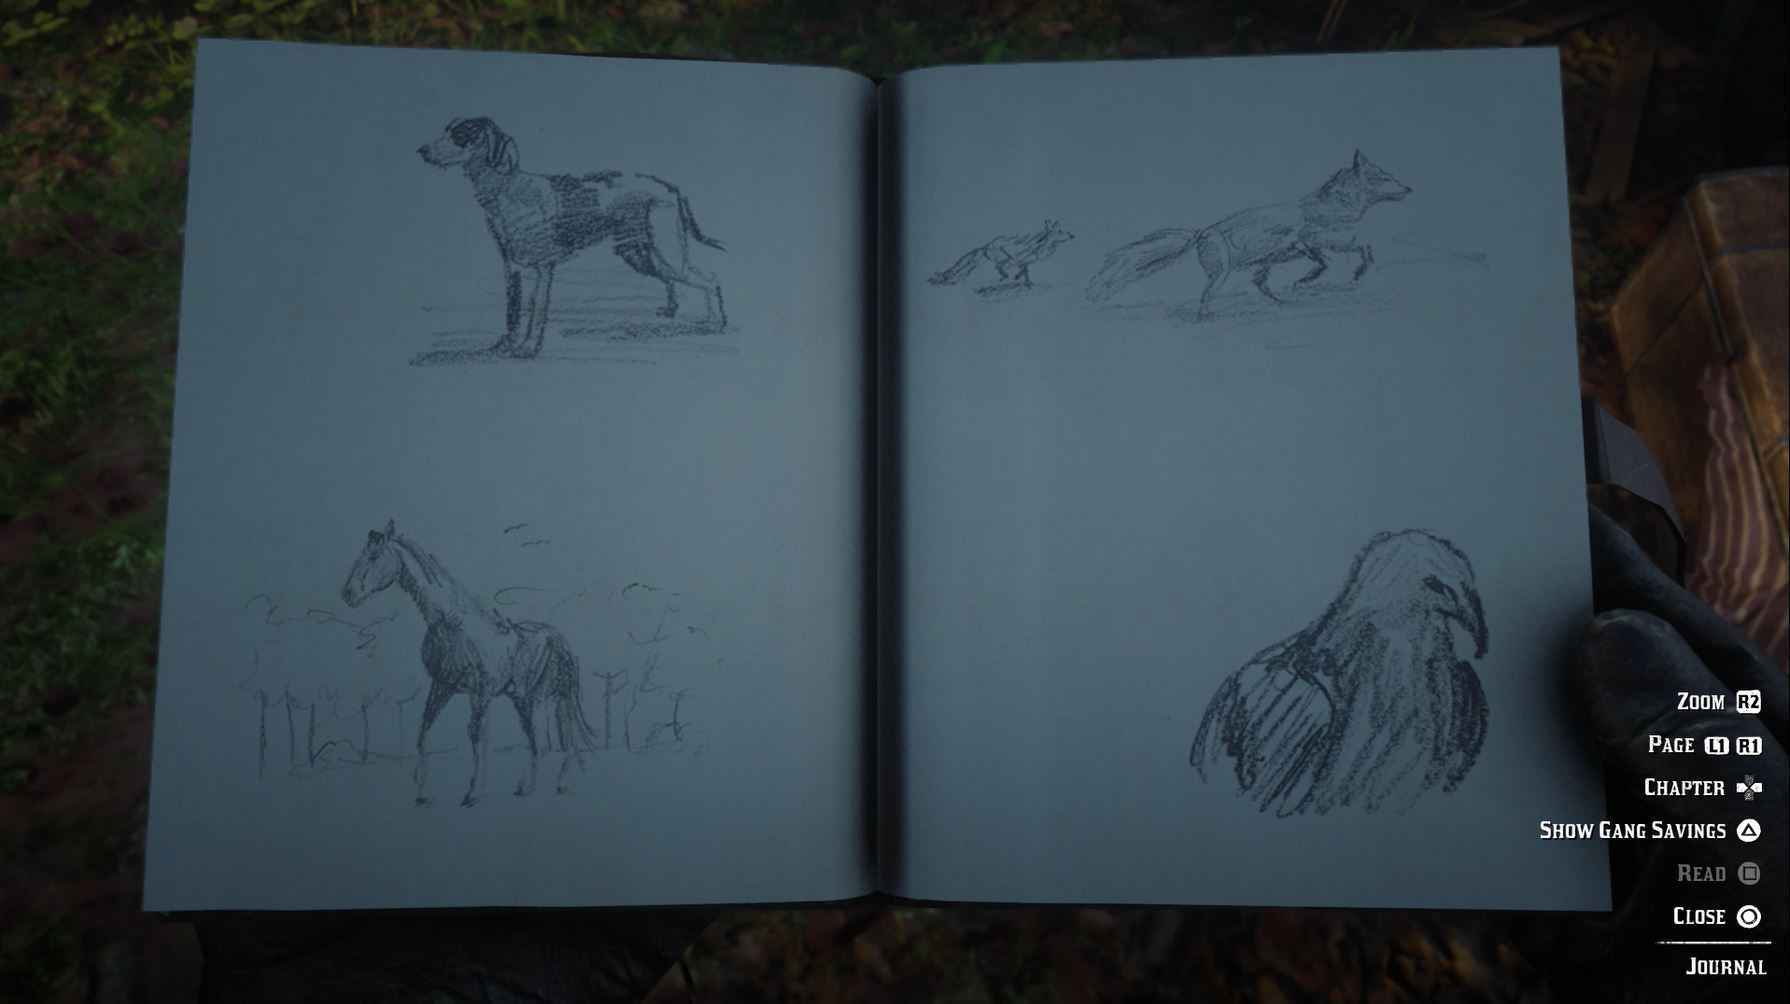 The drawings in Arthur's Journal are really good.